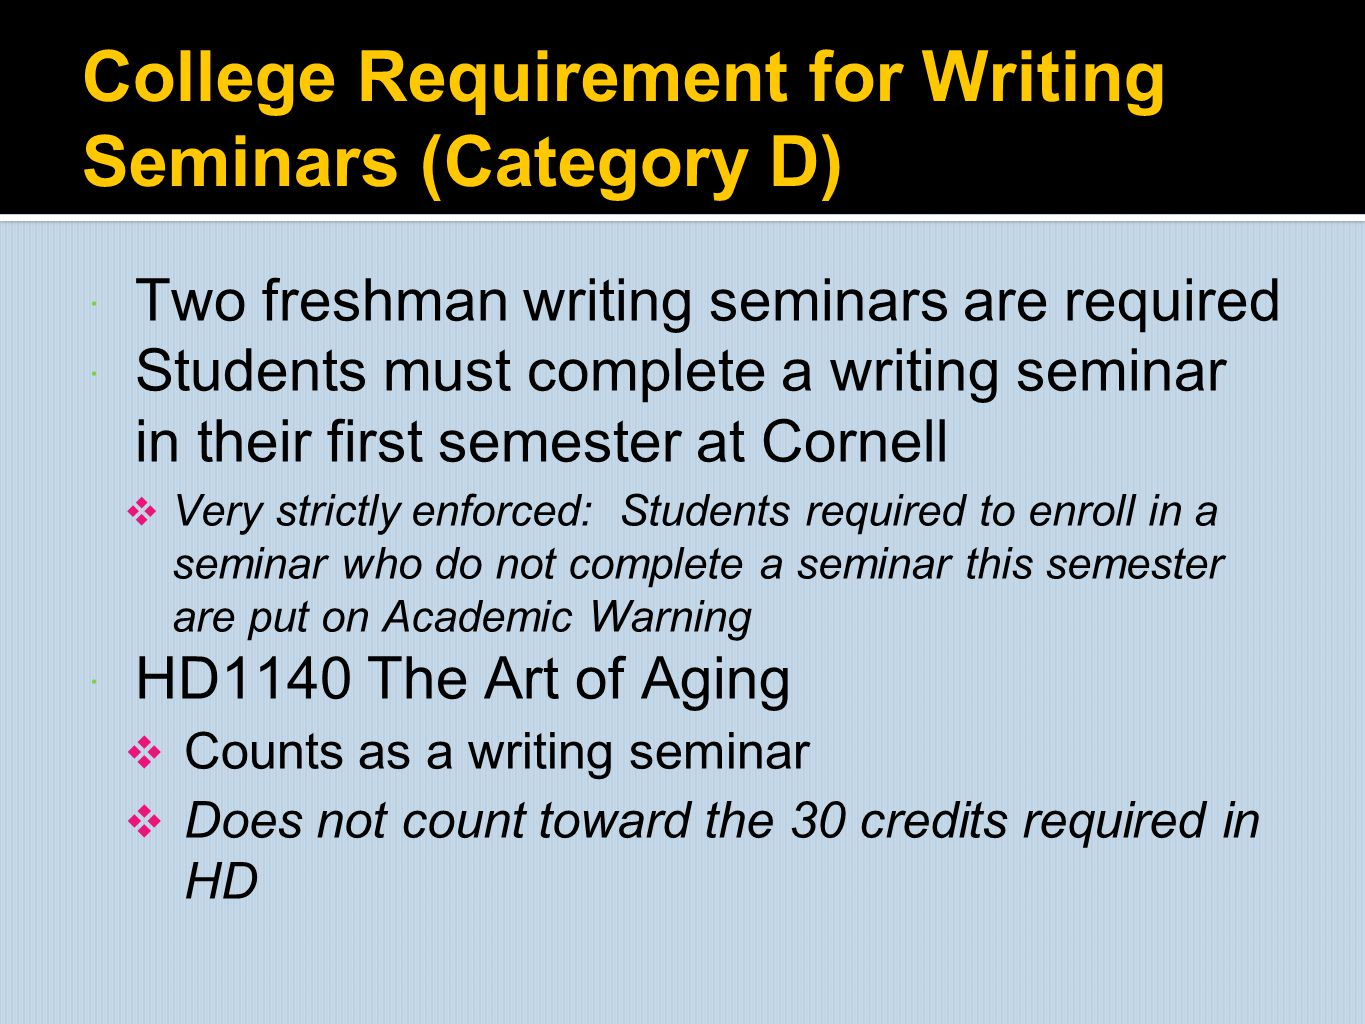 College Requirement for Writing Seminars (Category D)